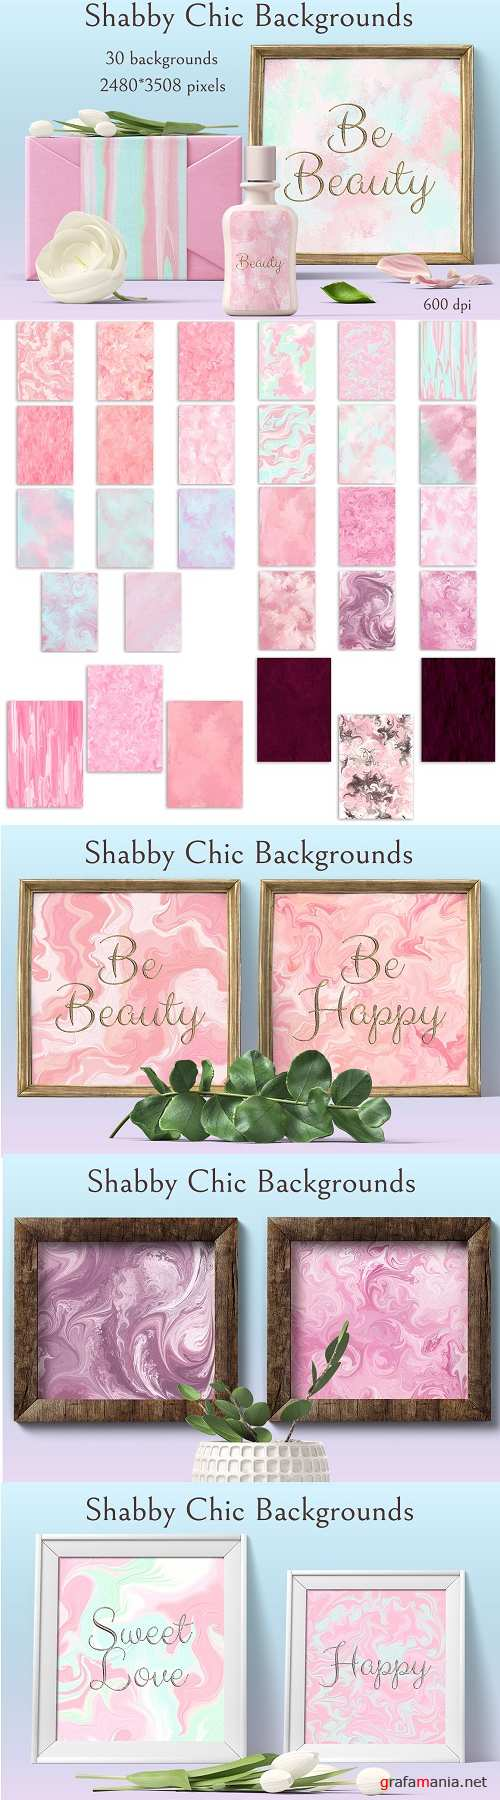 DesignBundles Shabby Chic Backrounds 56599